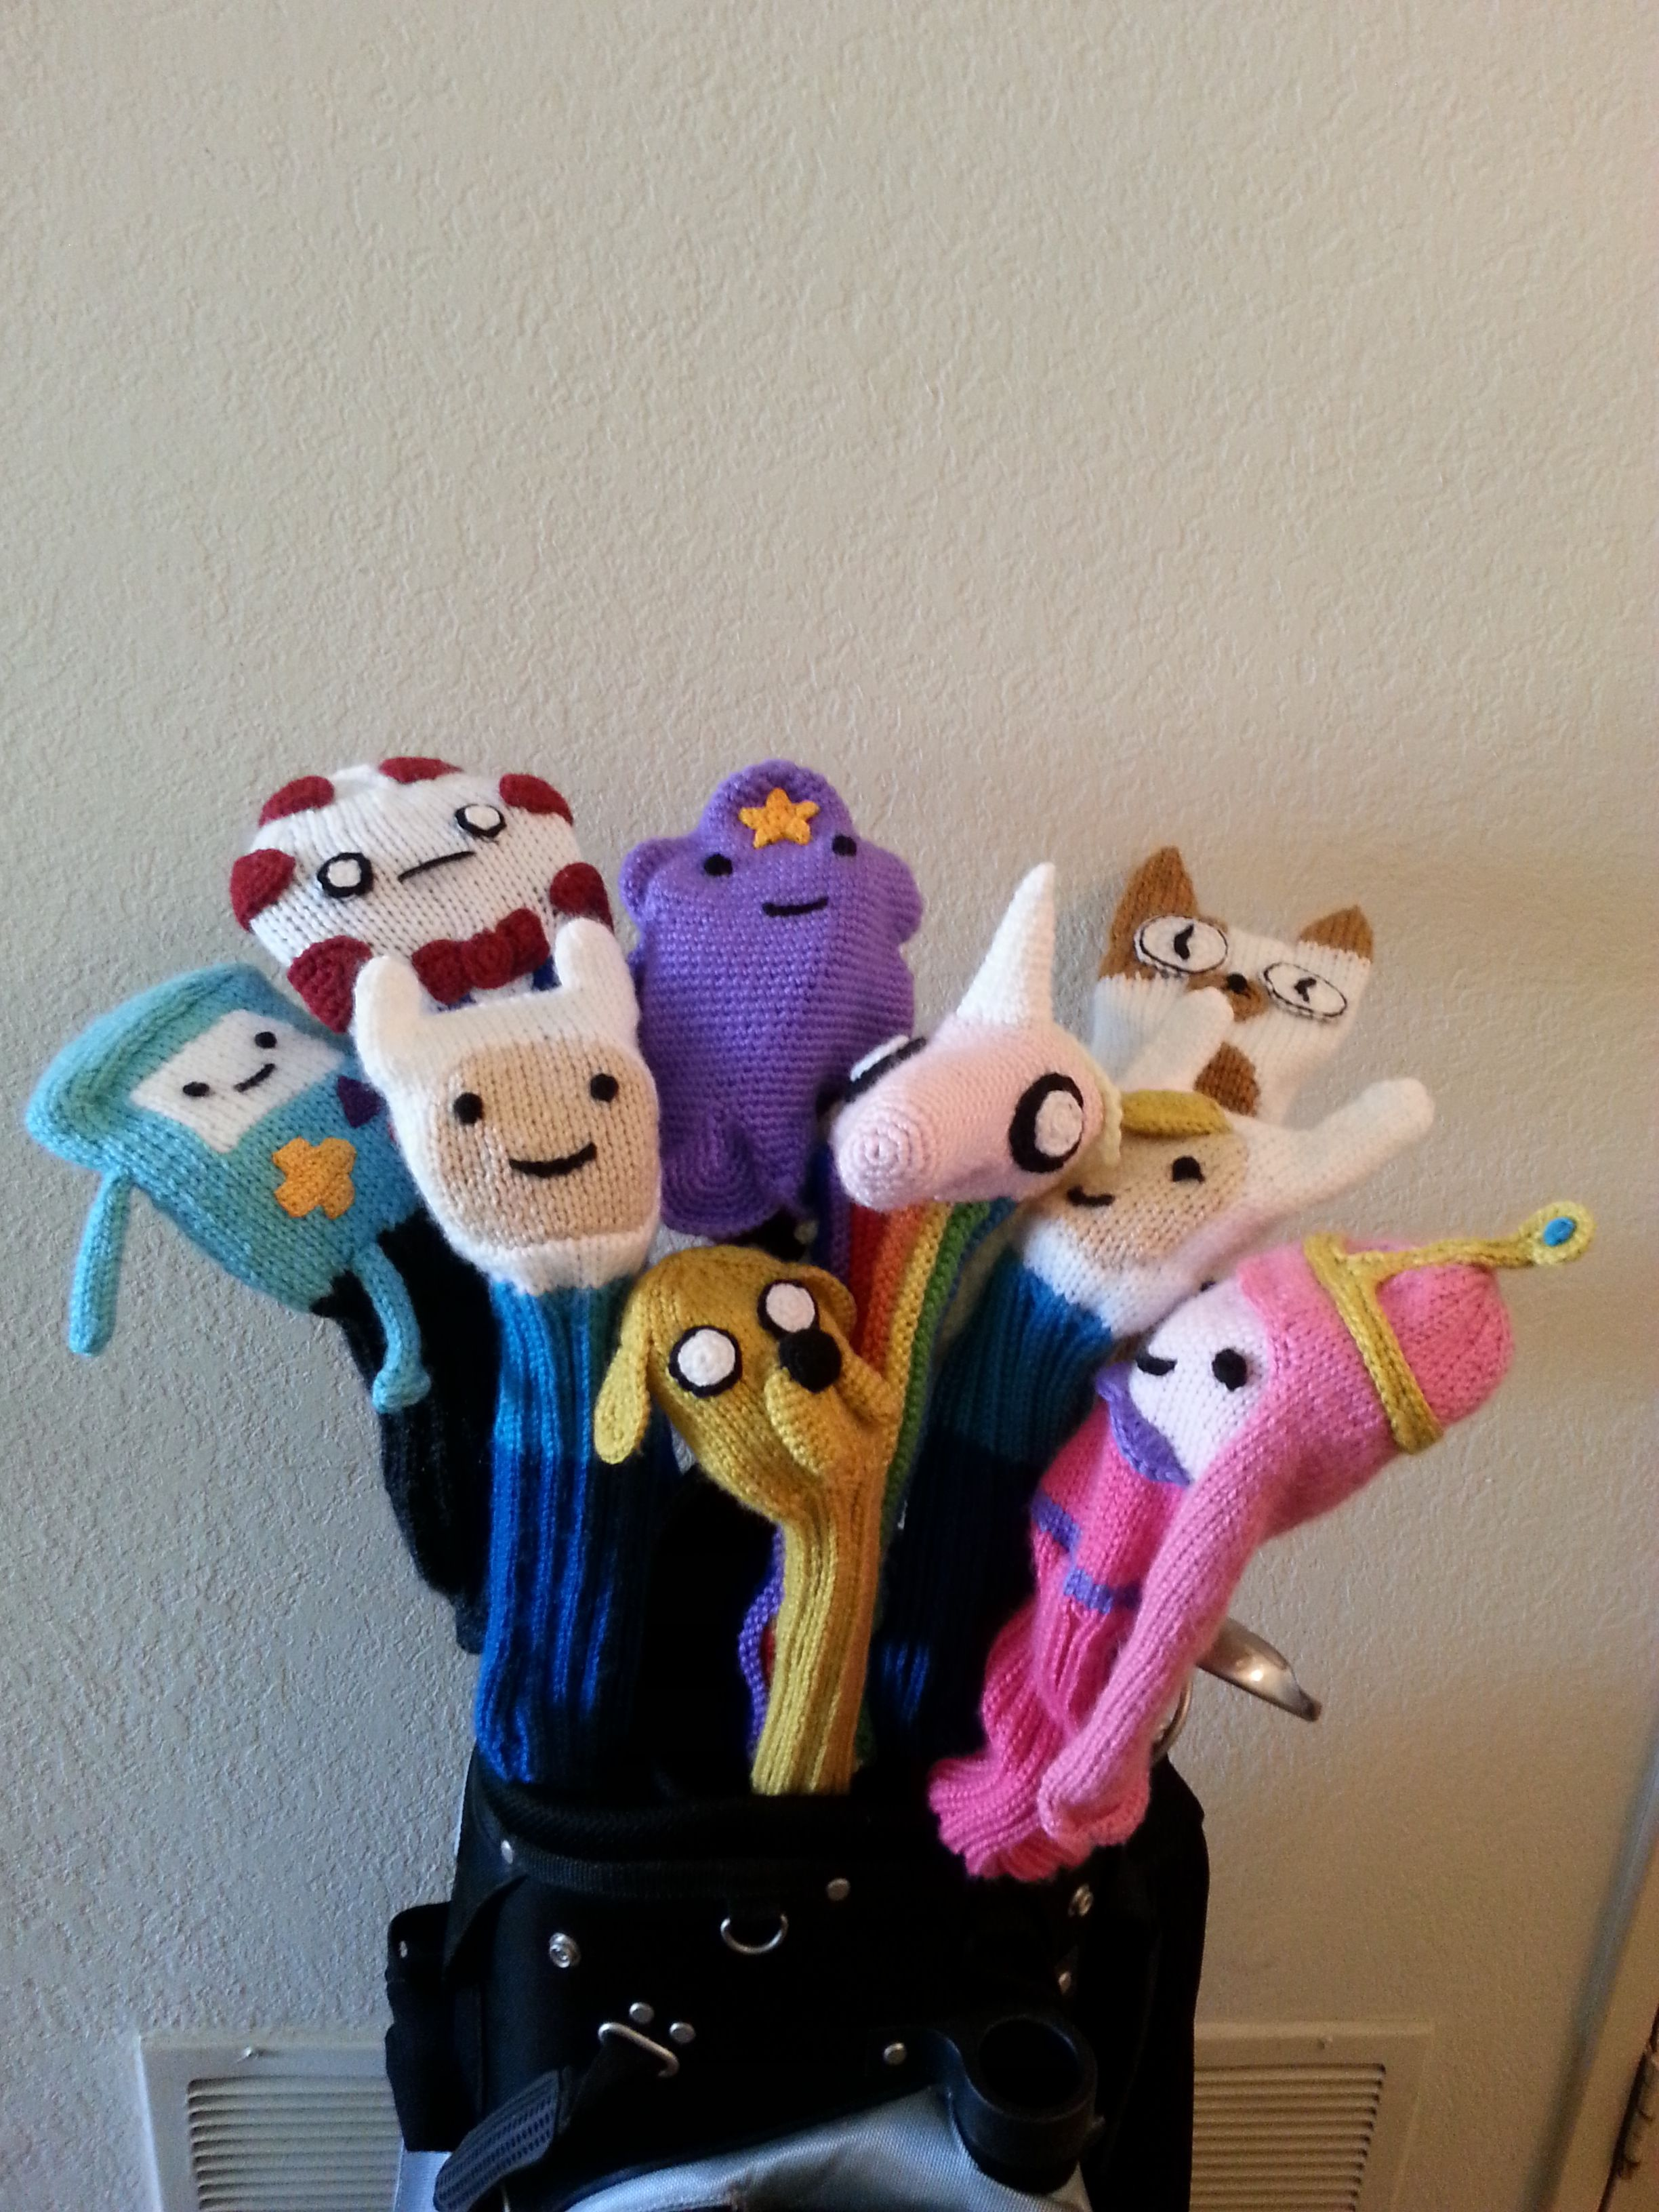 Adventure Time | knitted golf club cover set | Adventure Time ...